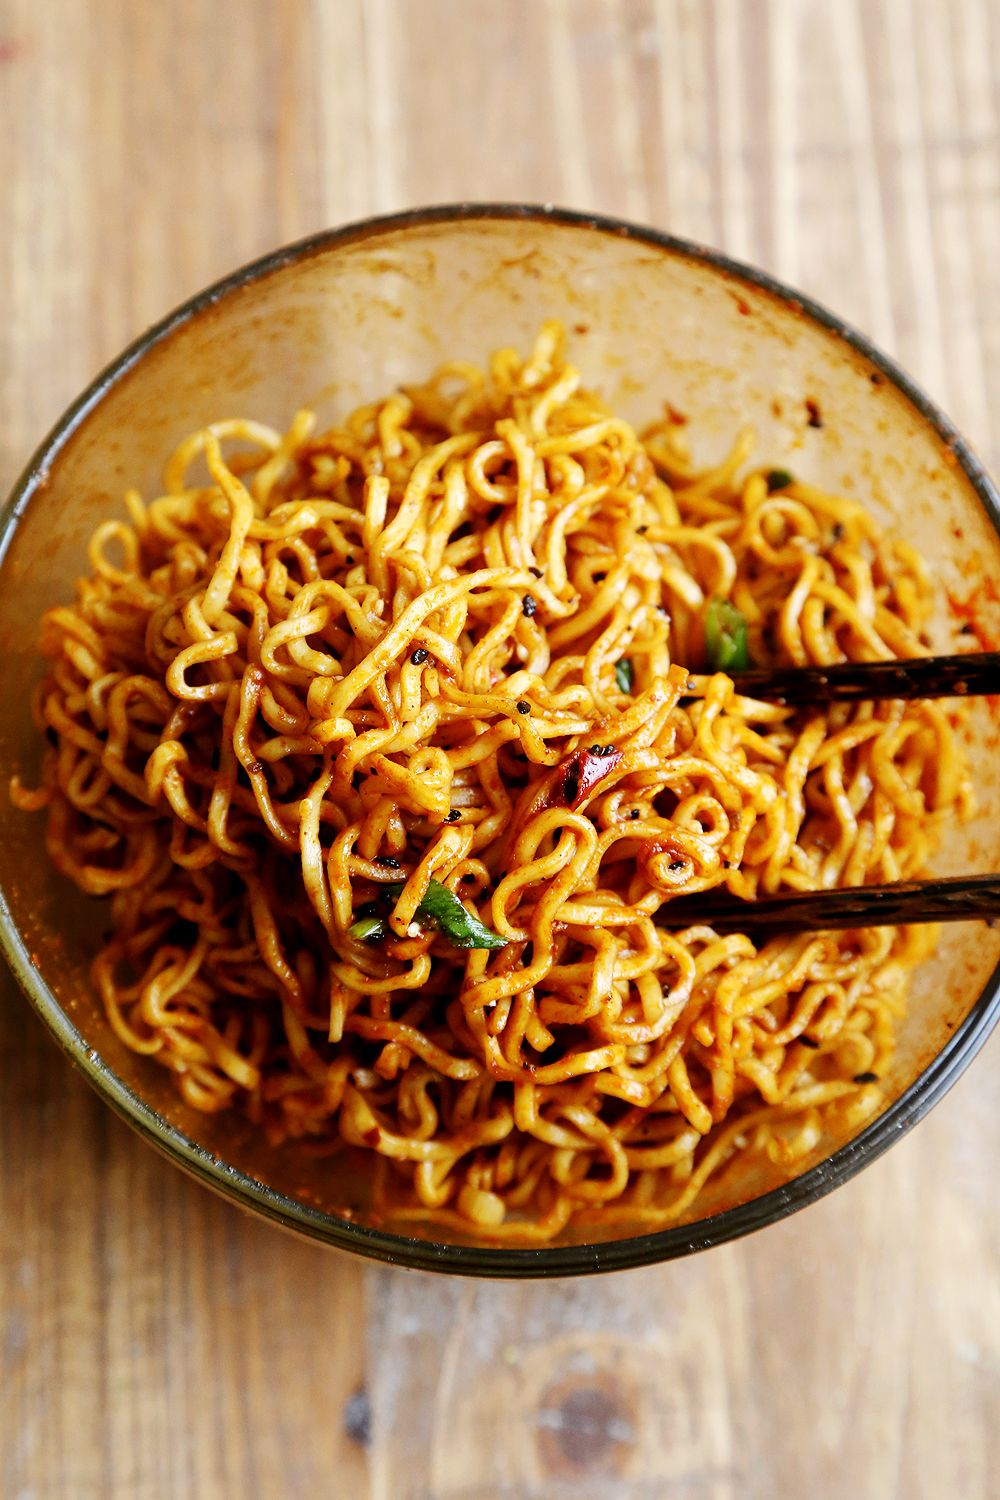 Organic Ramen With Sesame And Spicy Chili Seasoning Favourite Recipes Noodles And Pasta